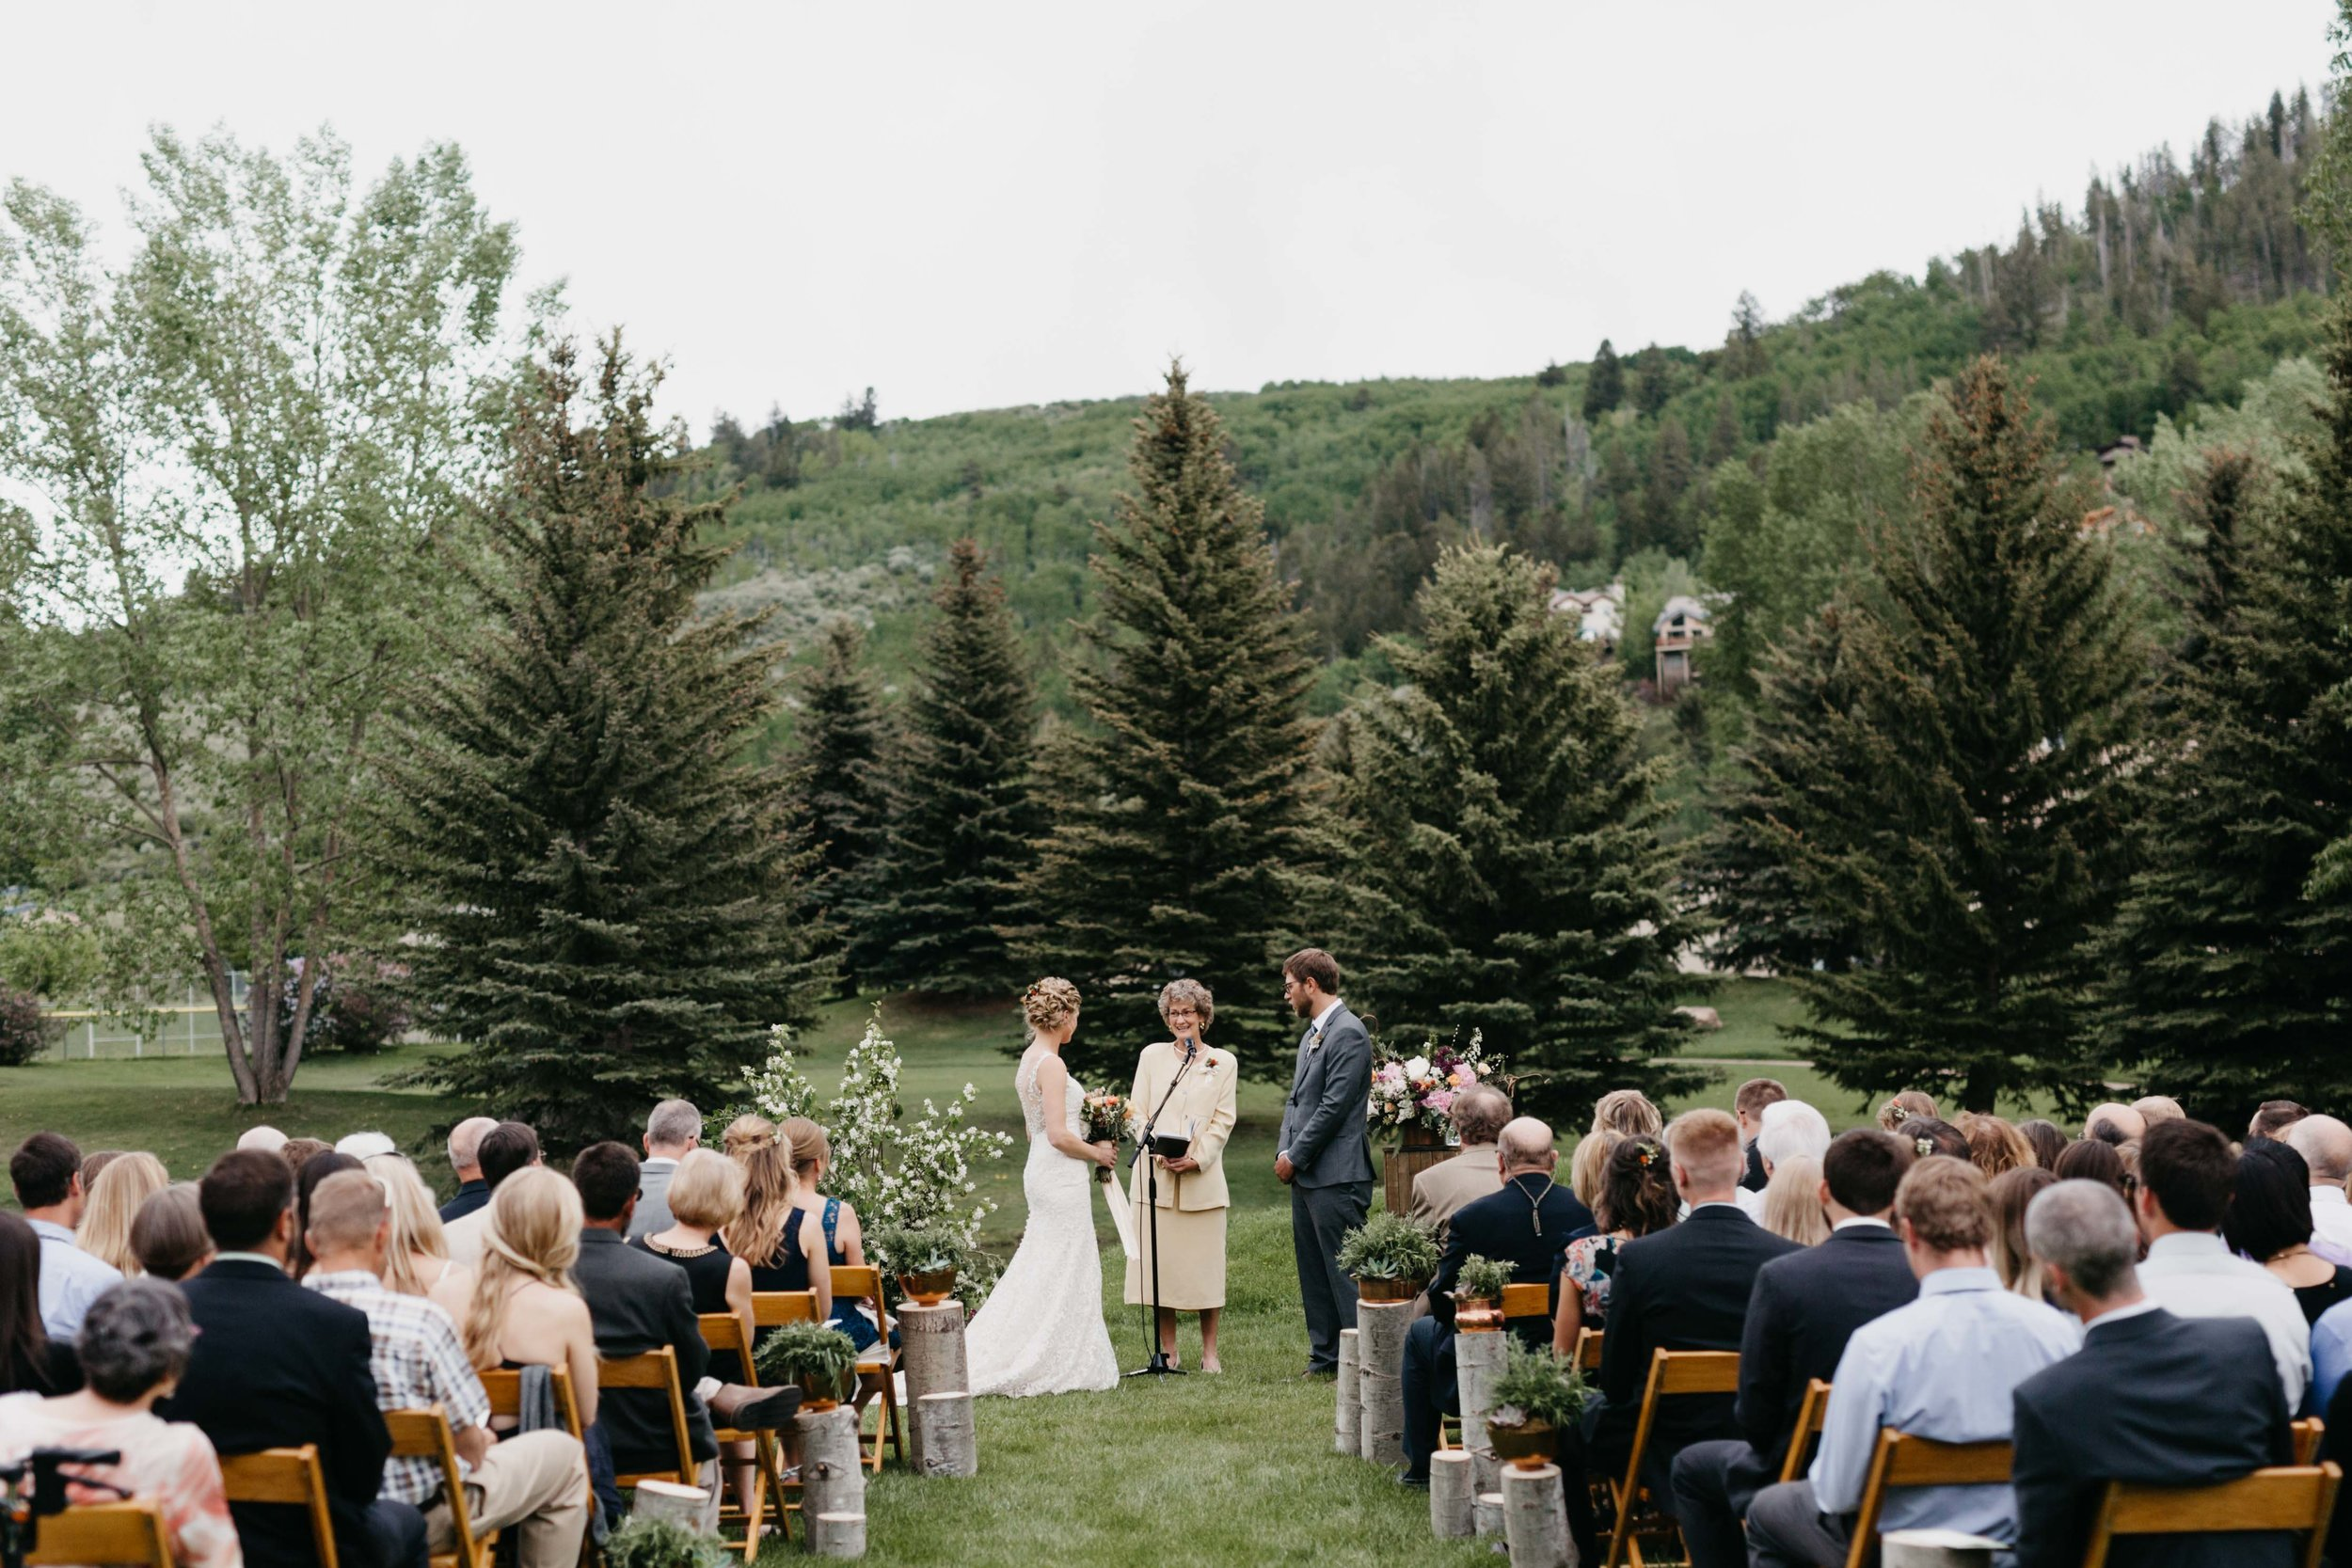 Colorado-Wedding-Photographer-56.jpg